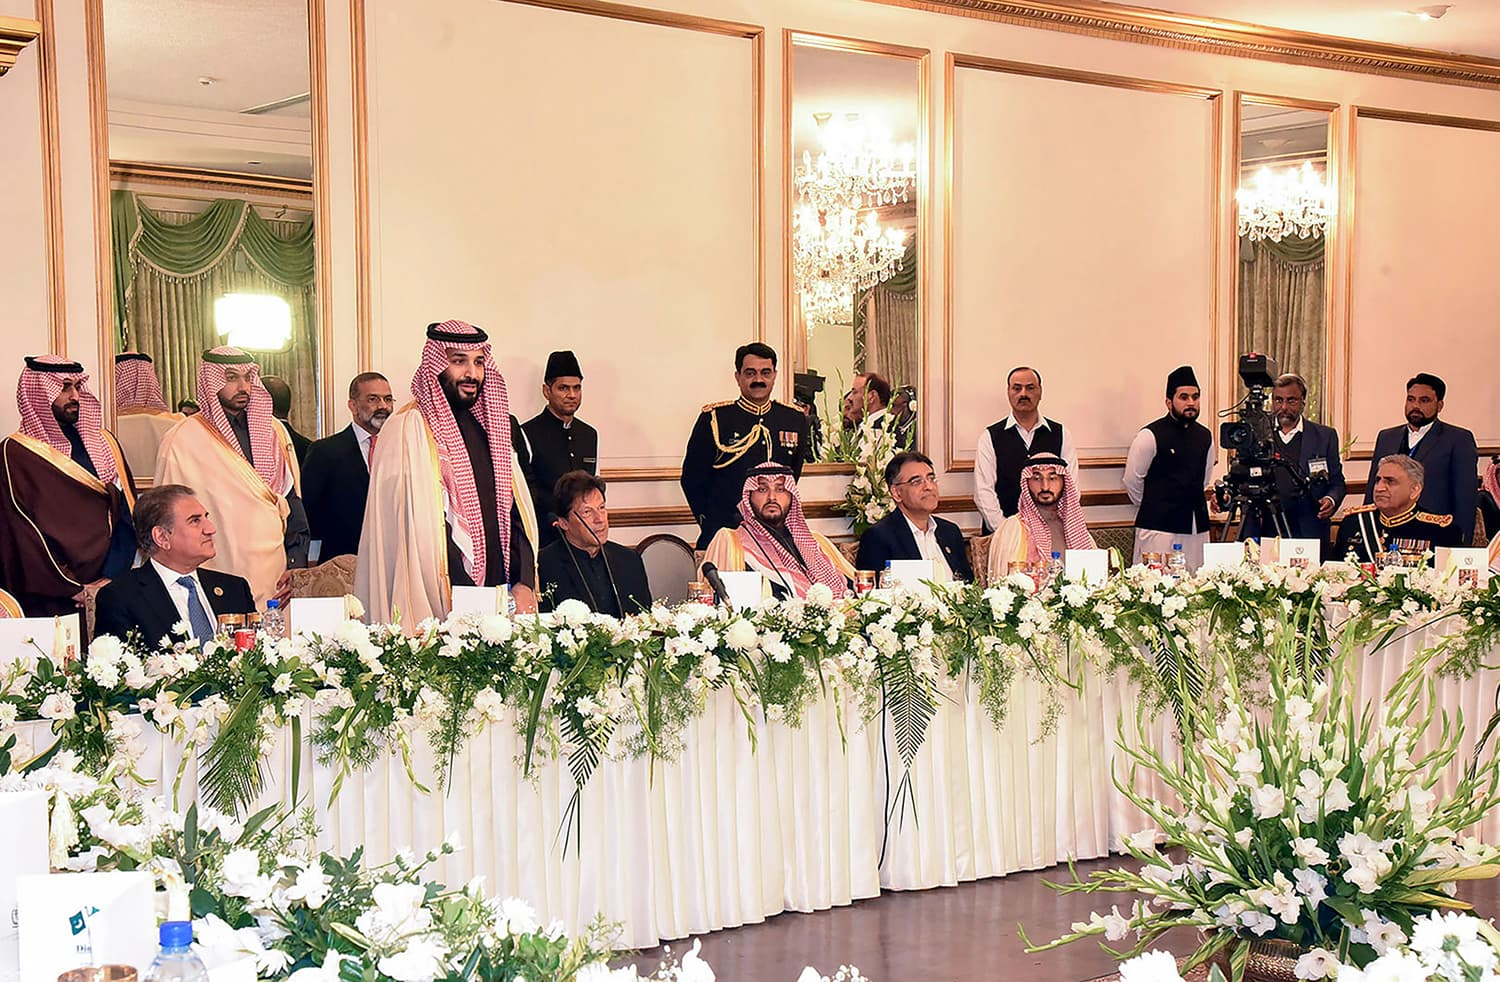 Crown Prince Mohammed bin Salman speaks next to Prime Minister Imran Khan during a reception at the Prime Minister House in Islamabad. — AFP